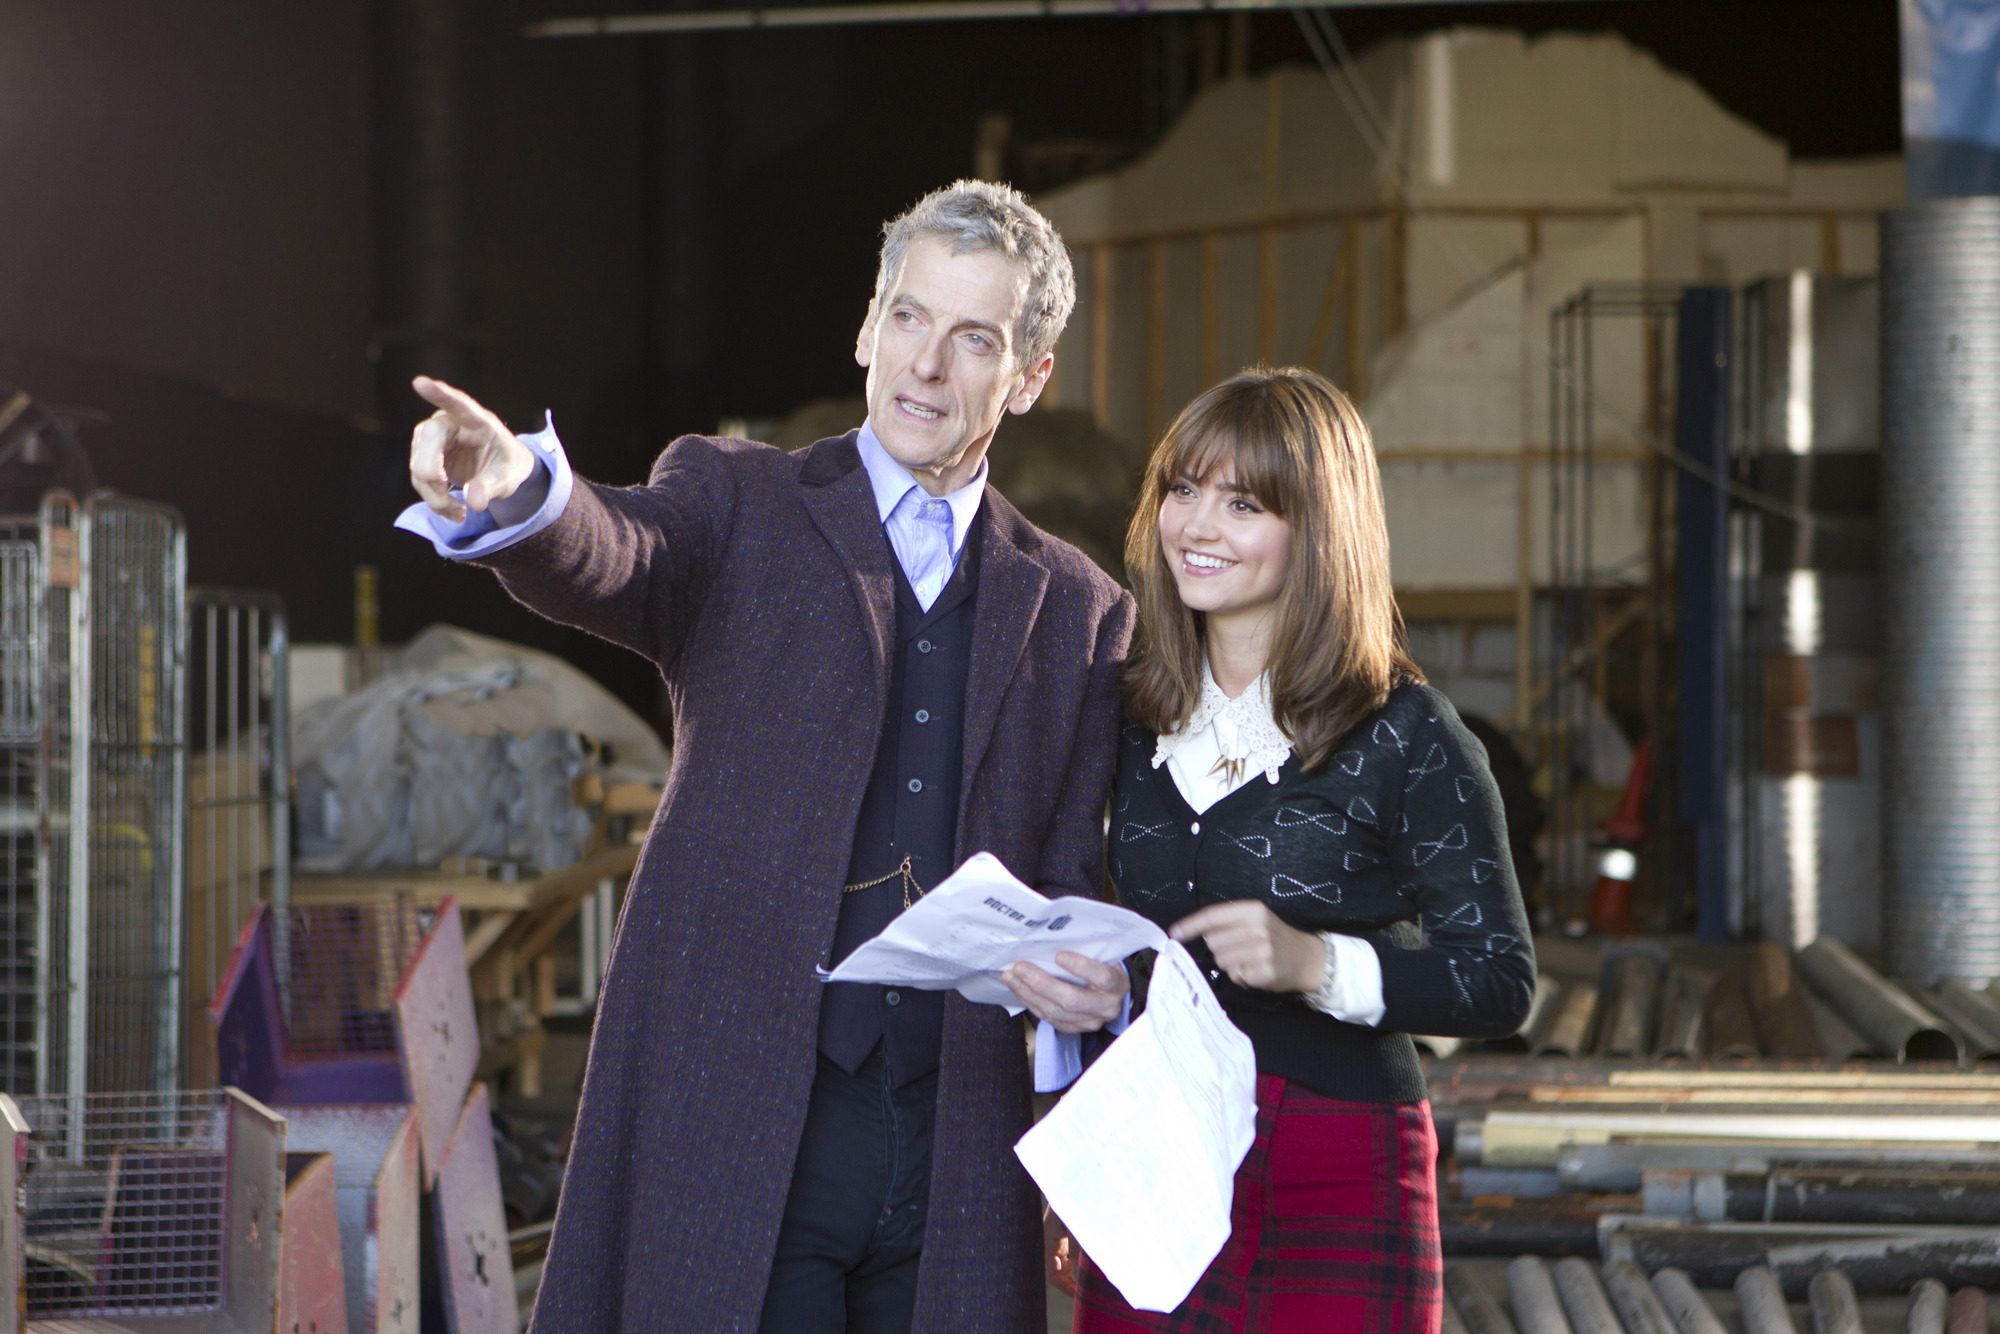 Doctor Who - Peter Capaldi and Jenna Coleman